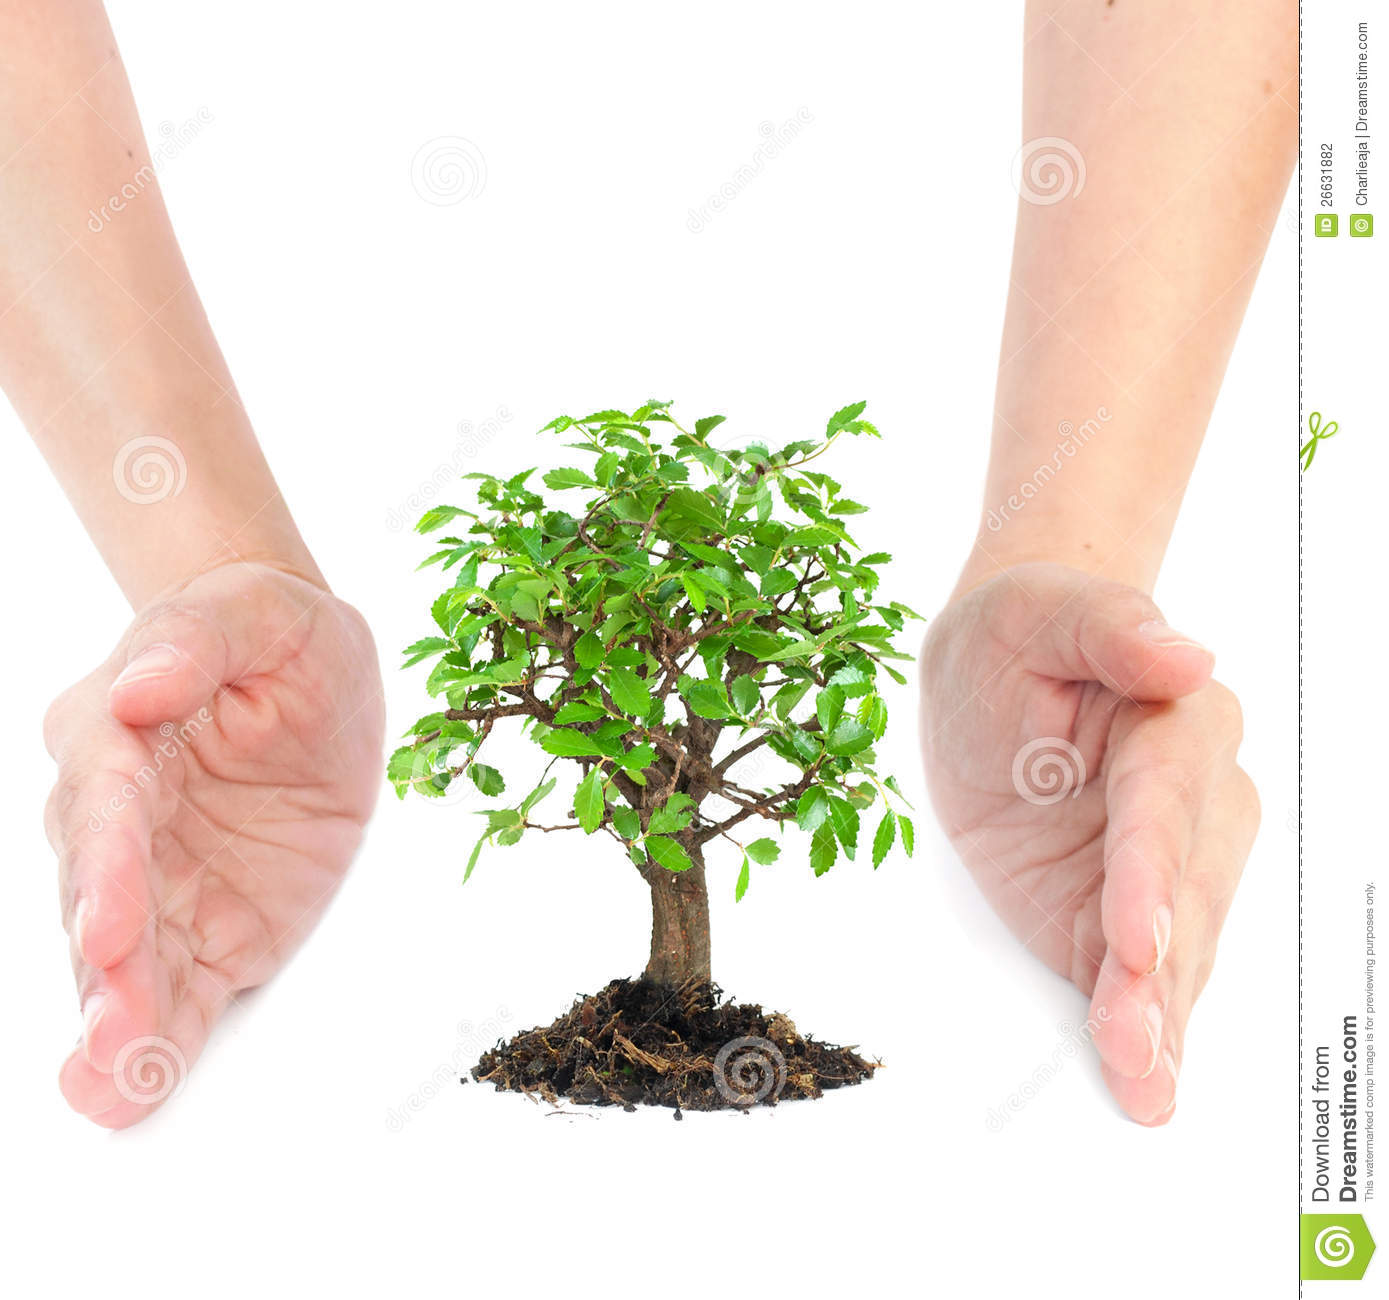 Hands Around Small Tree Stock Photography Image 26631882